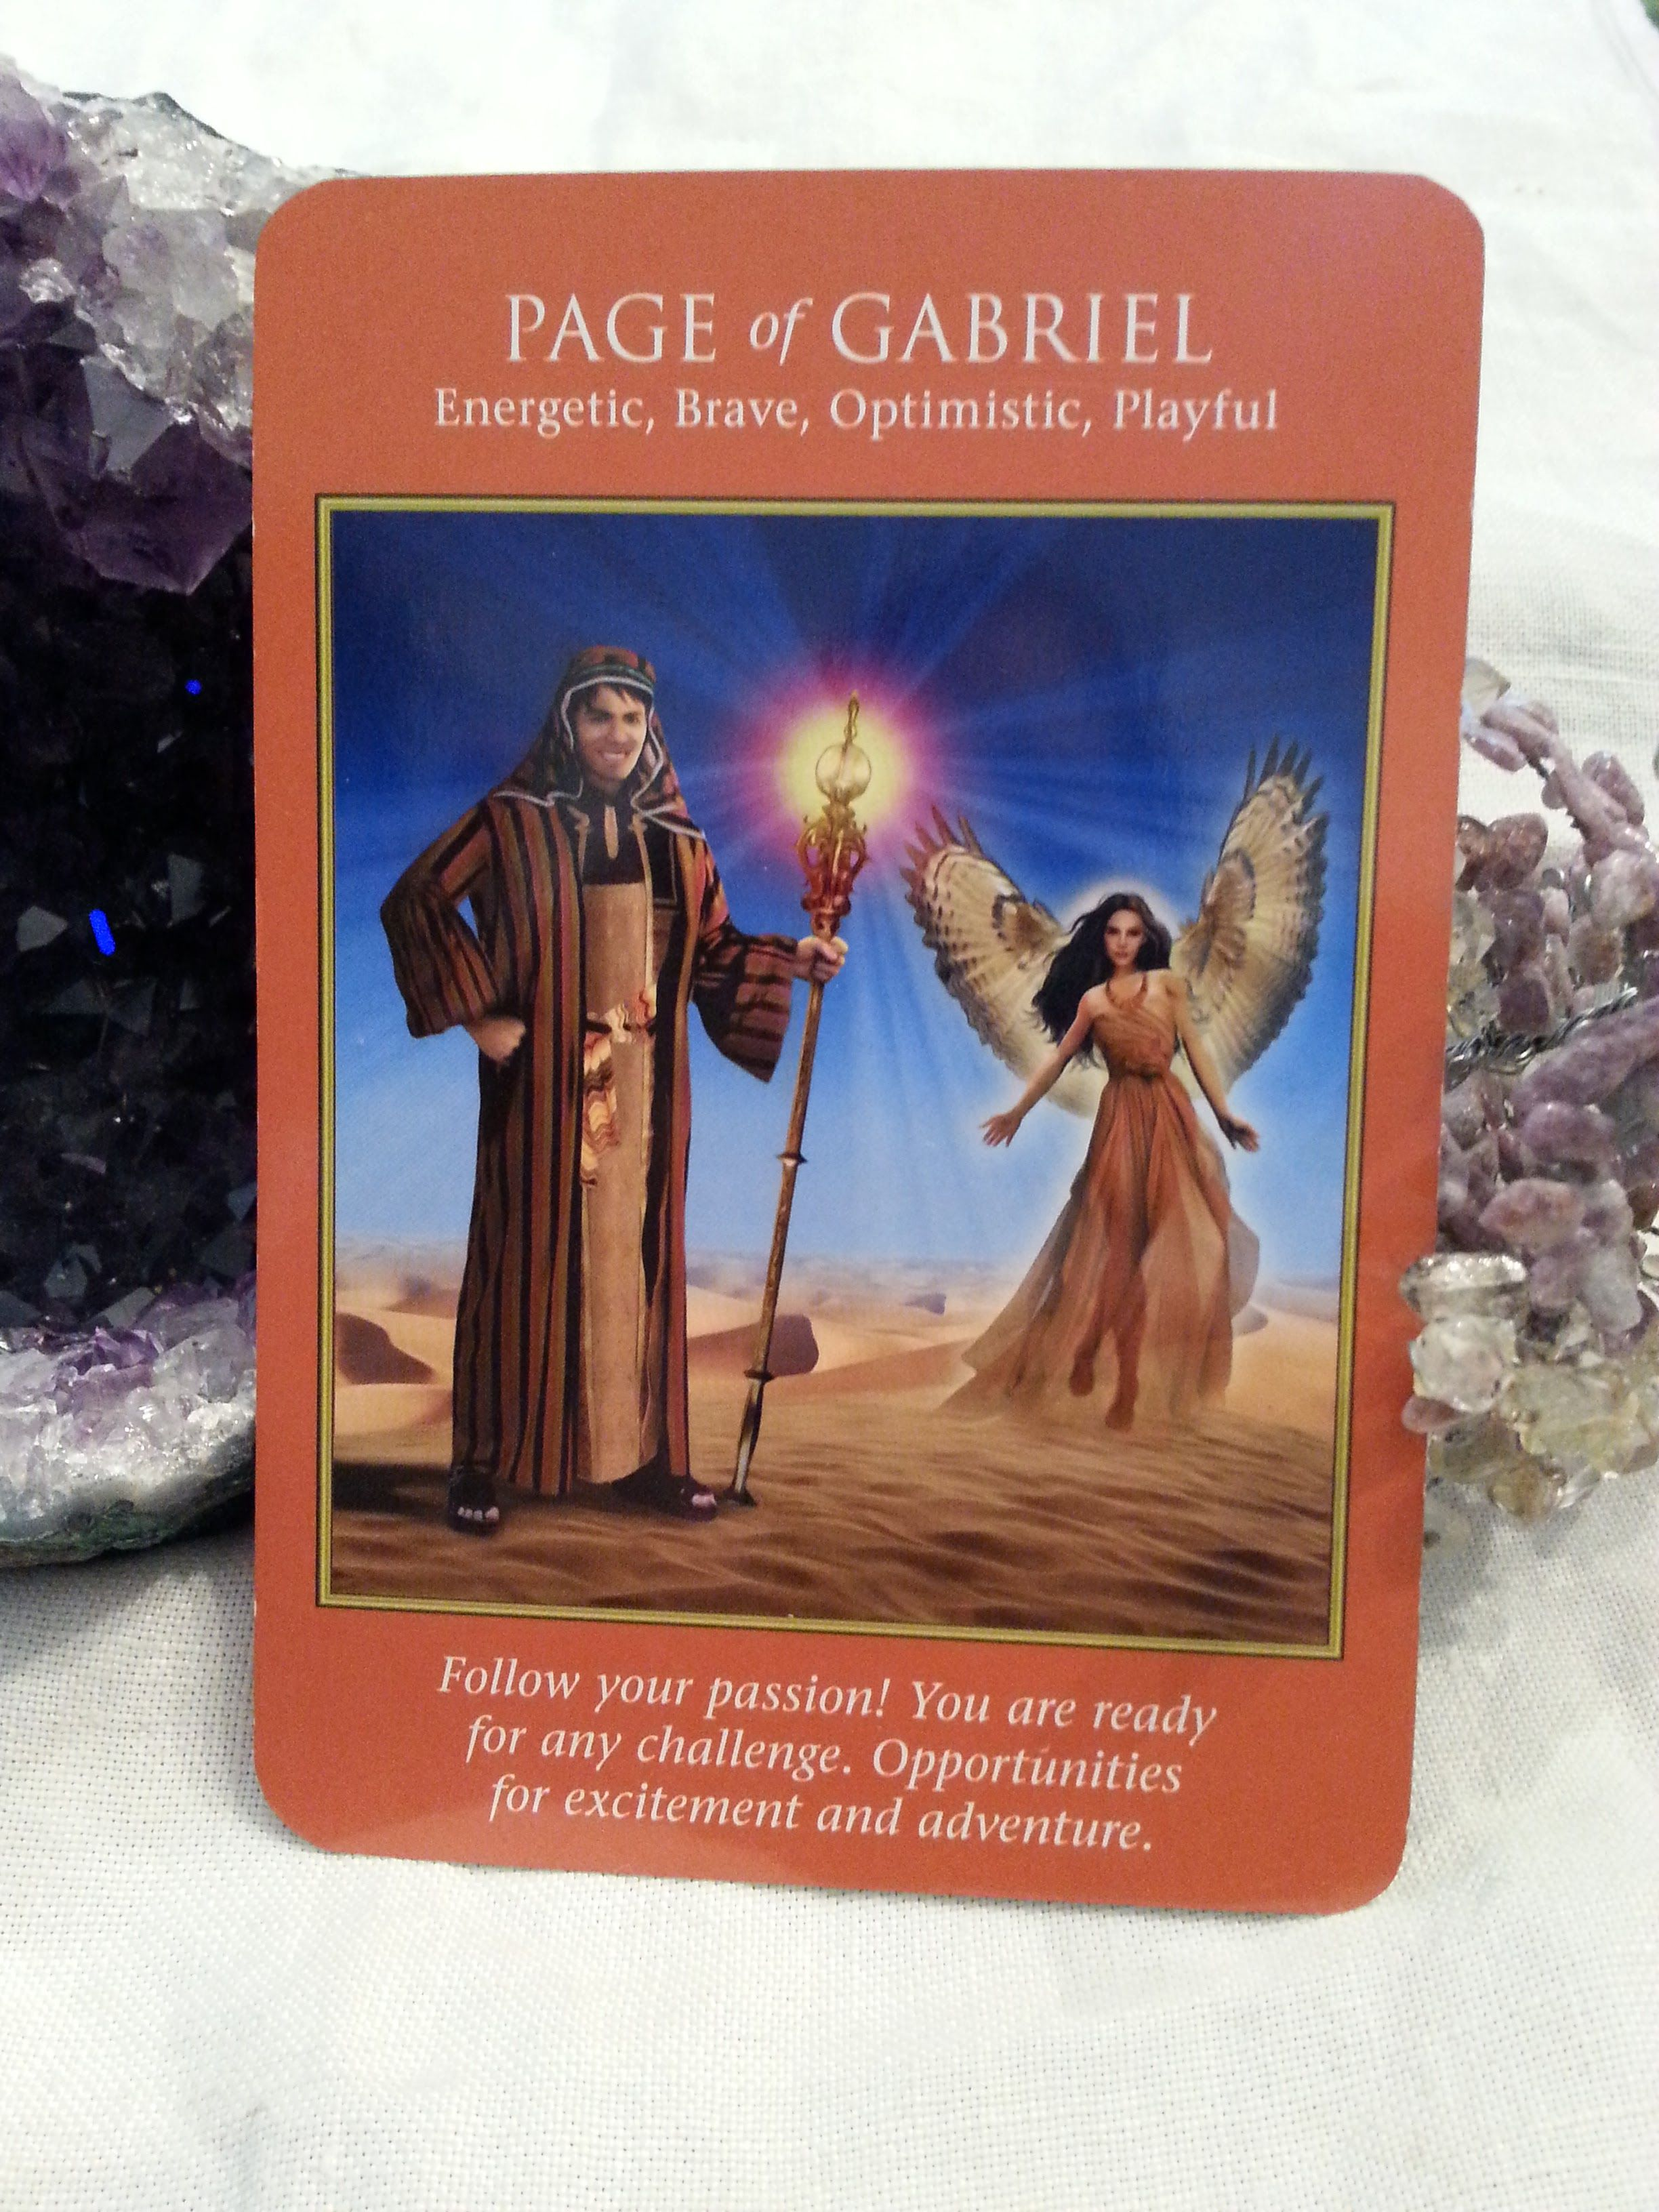 16 Dec – Today you may feel like dancing. Go for it! The AA Gabriel loves to dance! This raises your vibrations and helps you see that yes, you CAN do anything you set your heart on. Follow your bliss & make magic happen!  (Archangel Power Tarot, D. Virtue & R. Valentine) #dailycard #dailytarot #dailymessages #dailyguidance #dailyoracle #tarot #tarotcommunity #spirituality #metaphysical #divination #angelreading #angels #archangels #archangelpowertarot